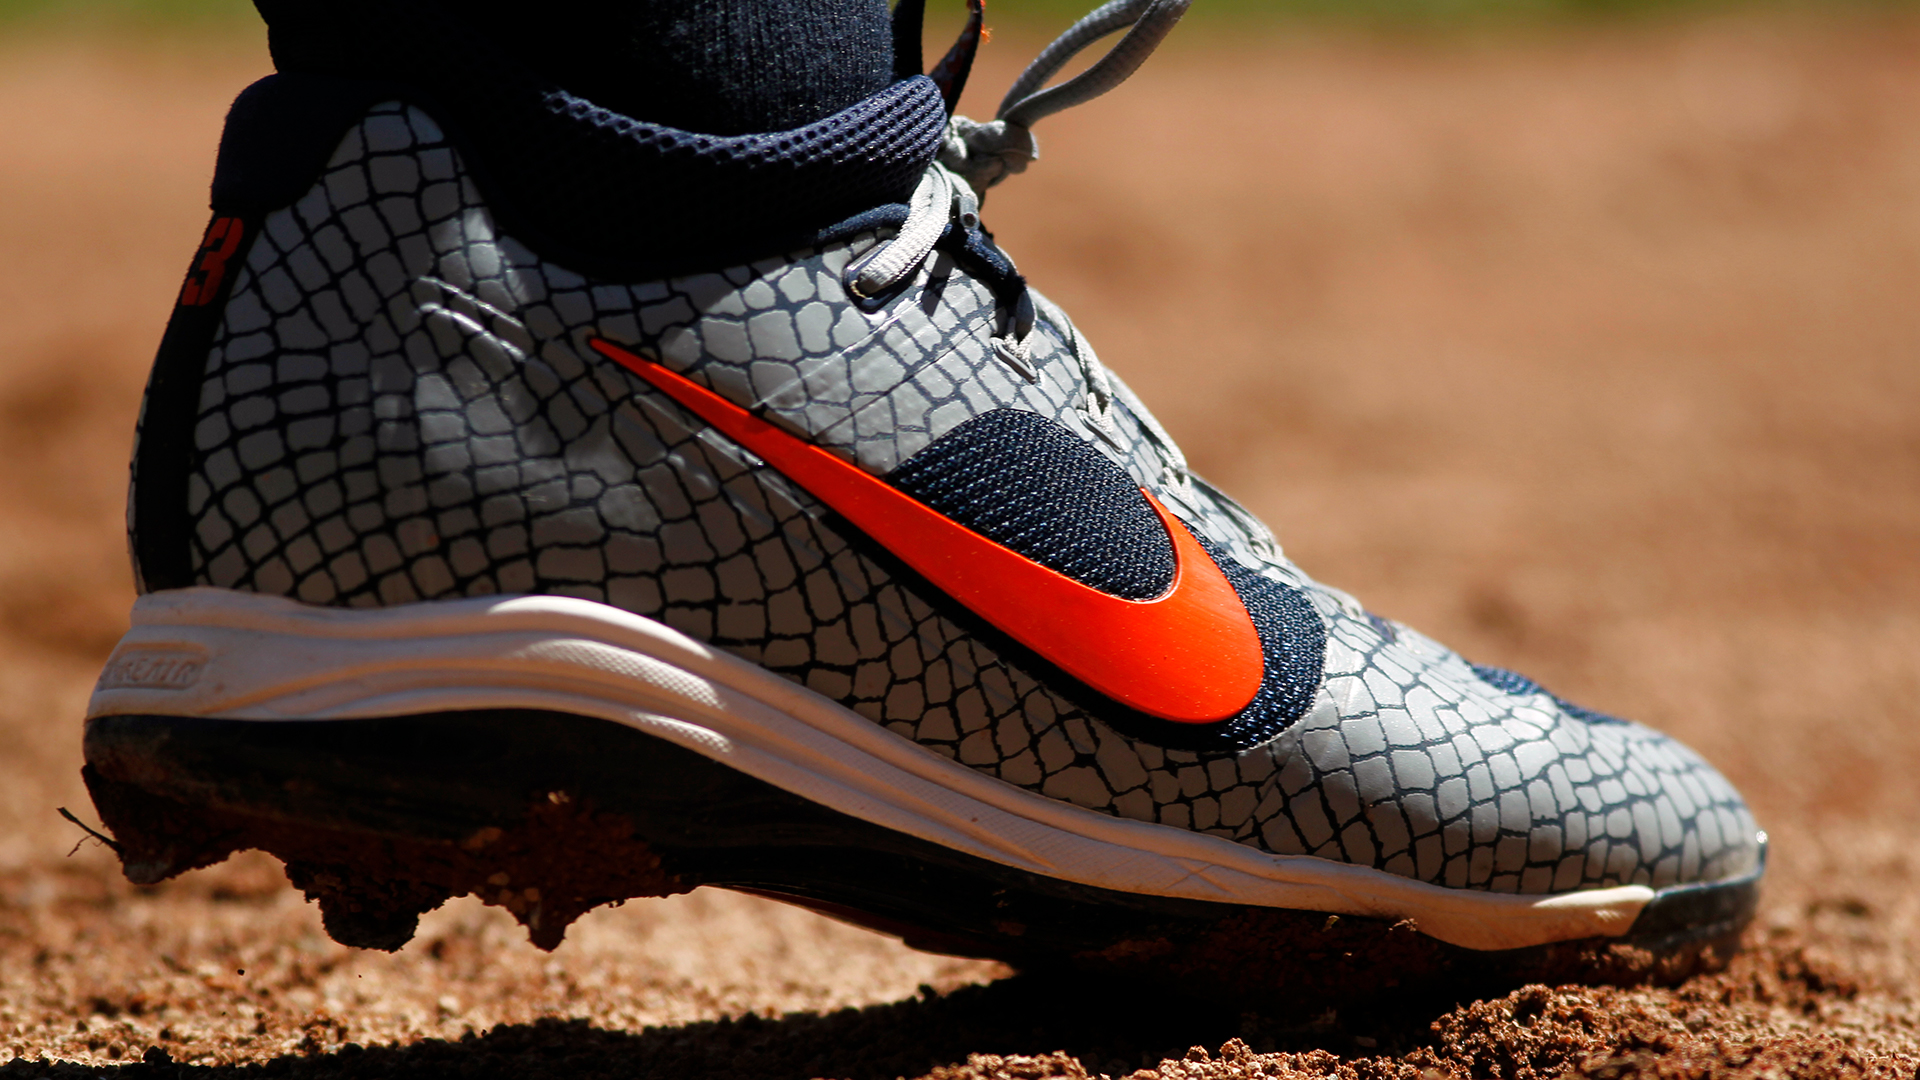 Nike shoe of Ian Kinsler-159532.jpg18709400